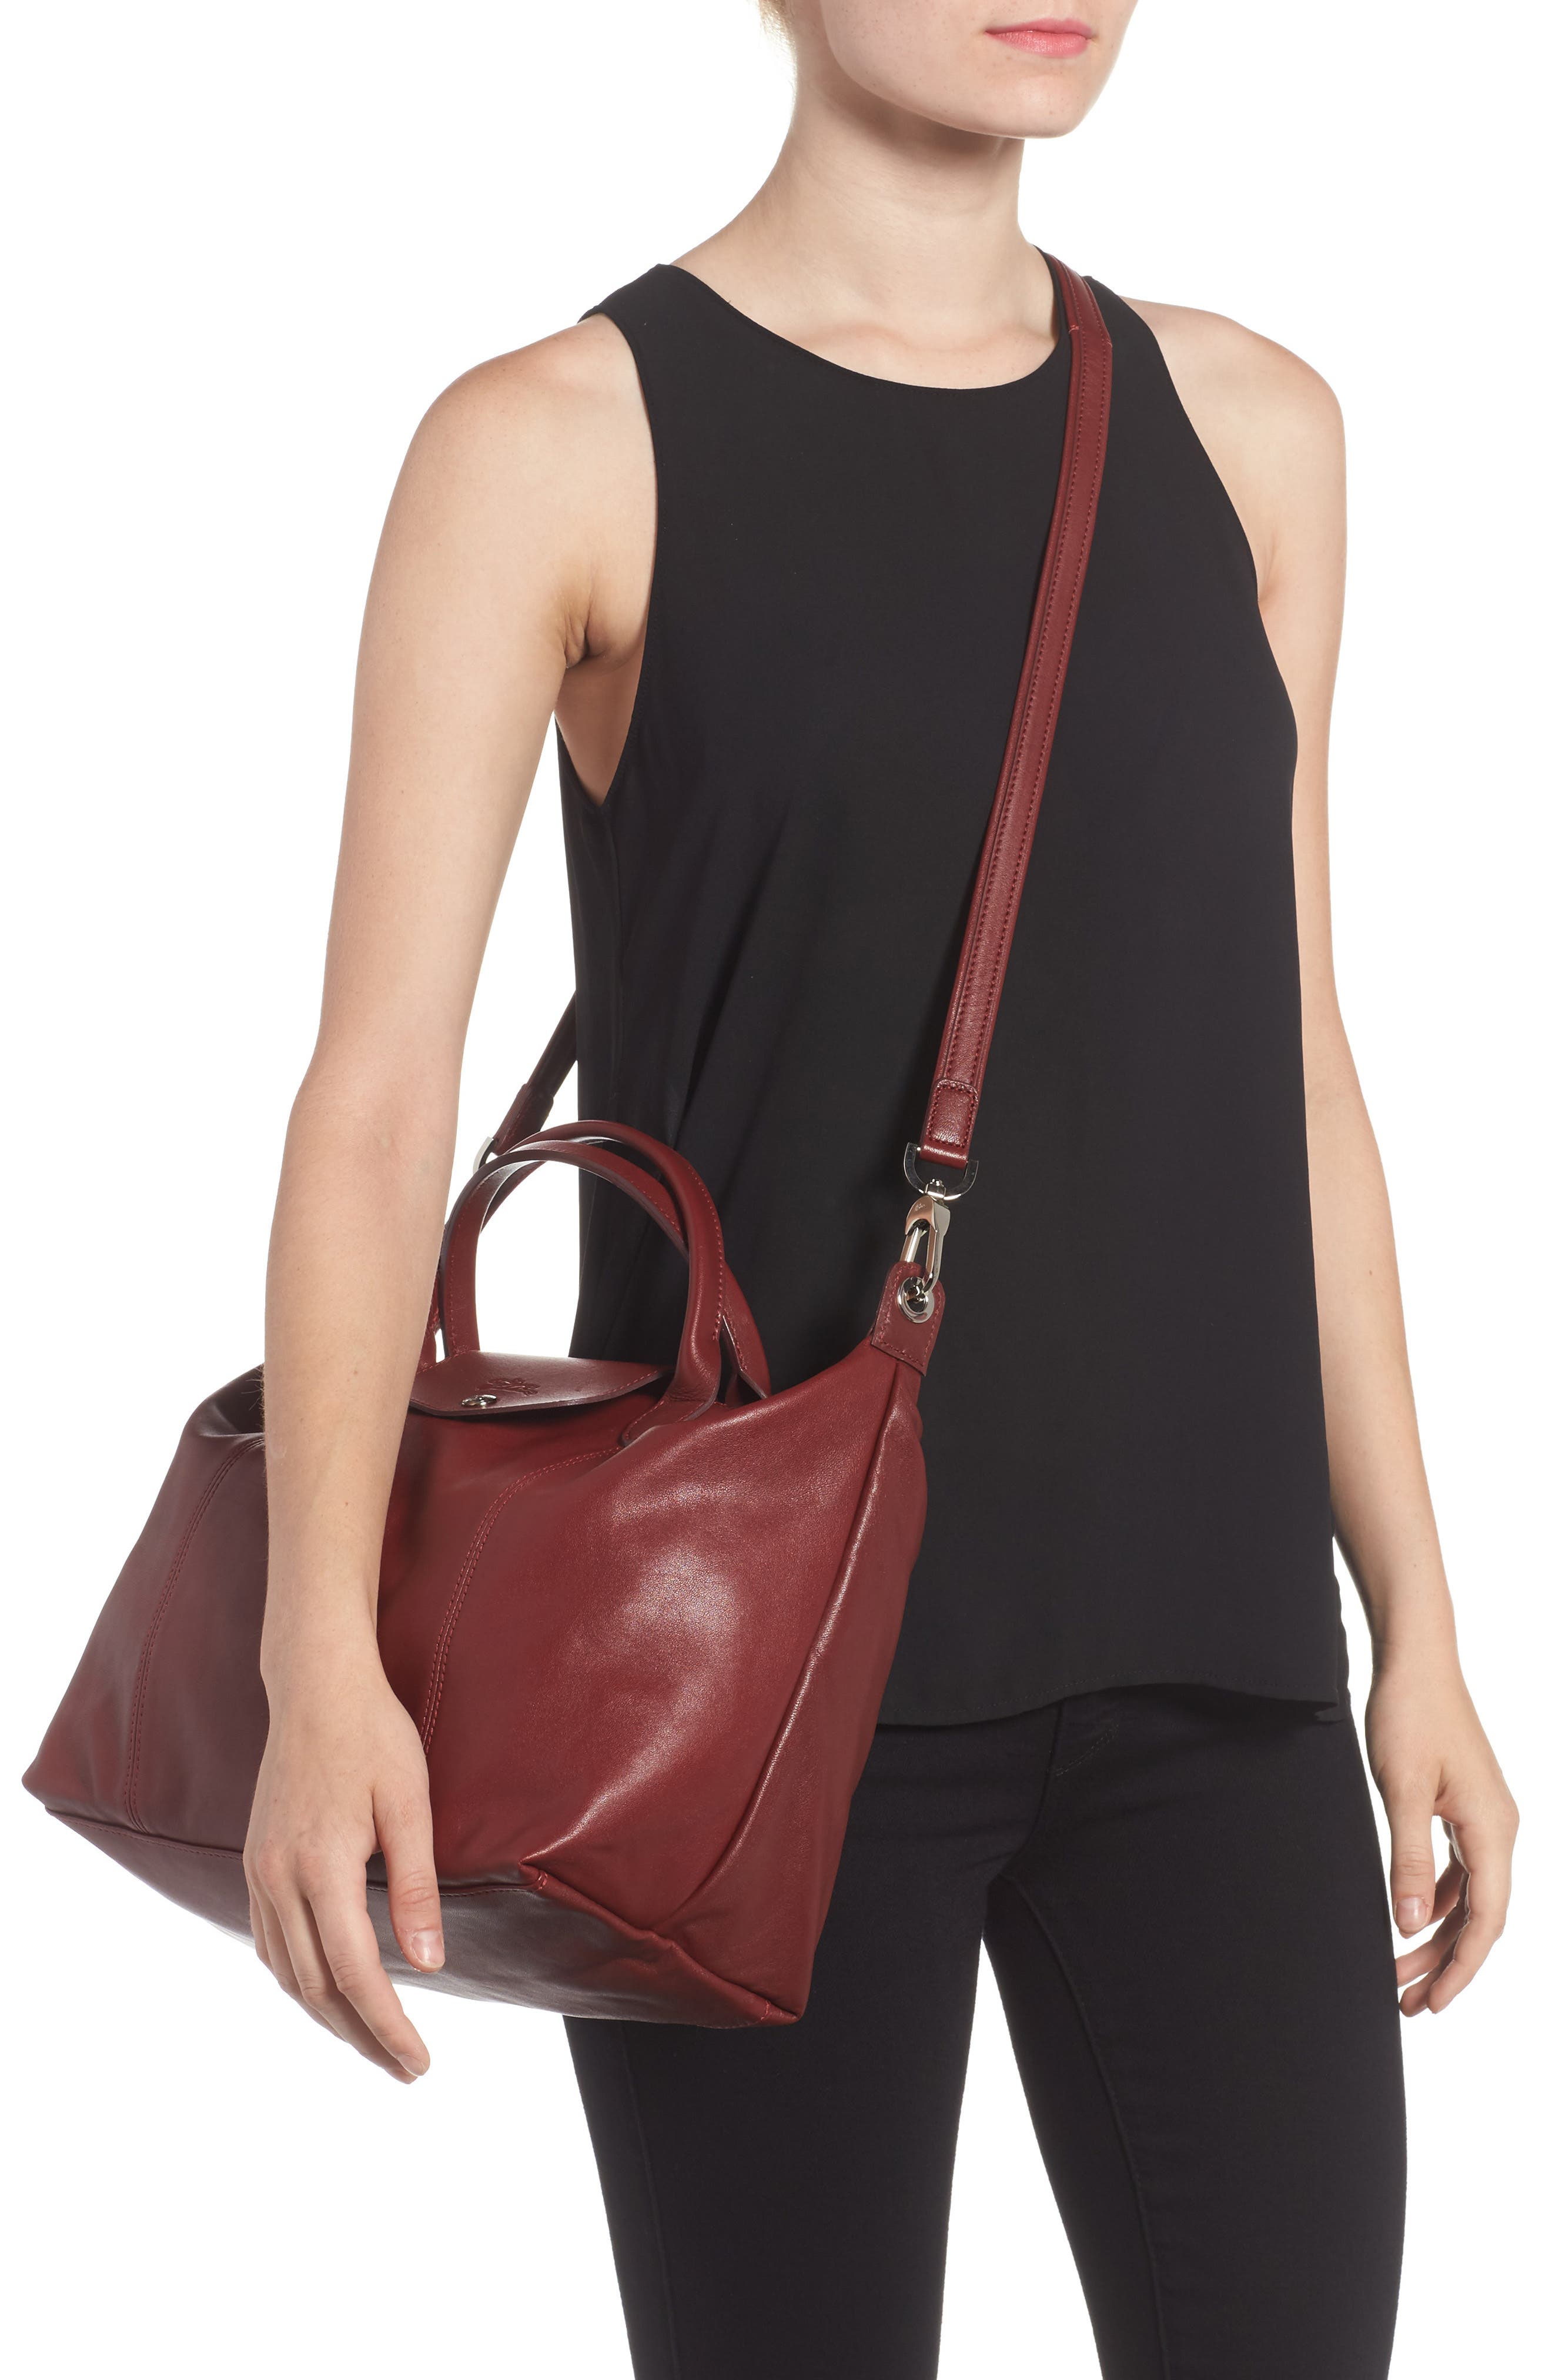 Medium 'Le Pliage Cuir' Leather Top Handle Tote,                             Alternate thumbnail 49, color,